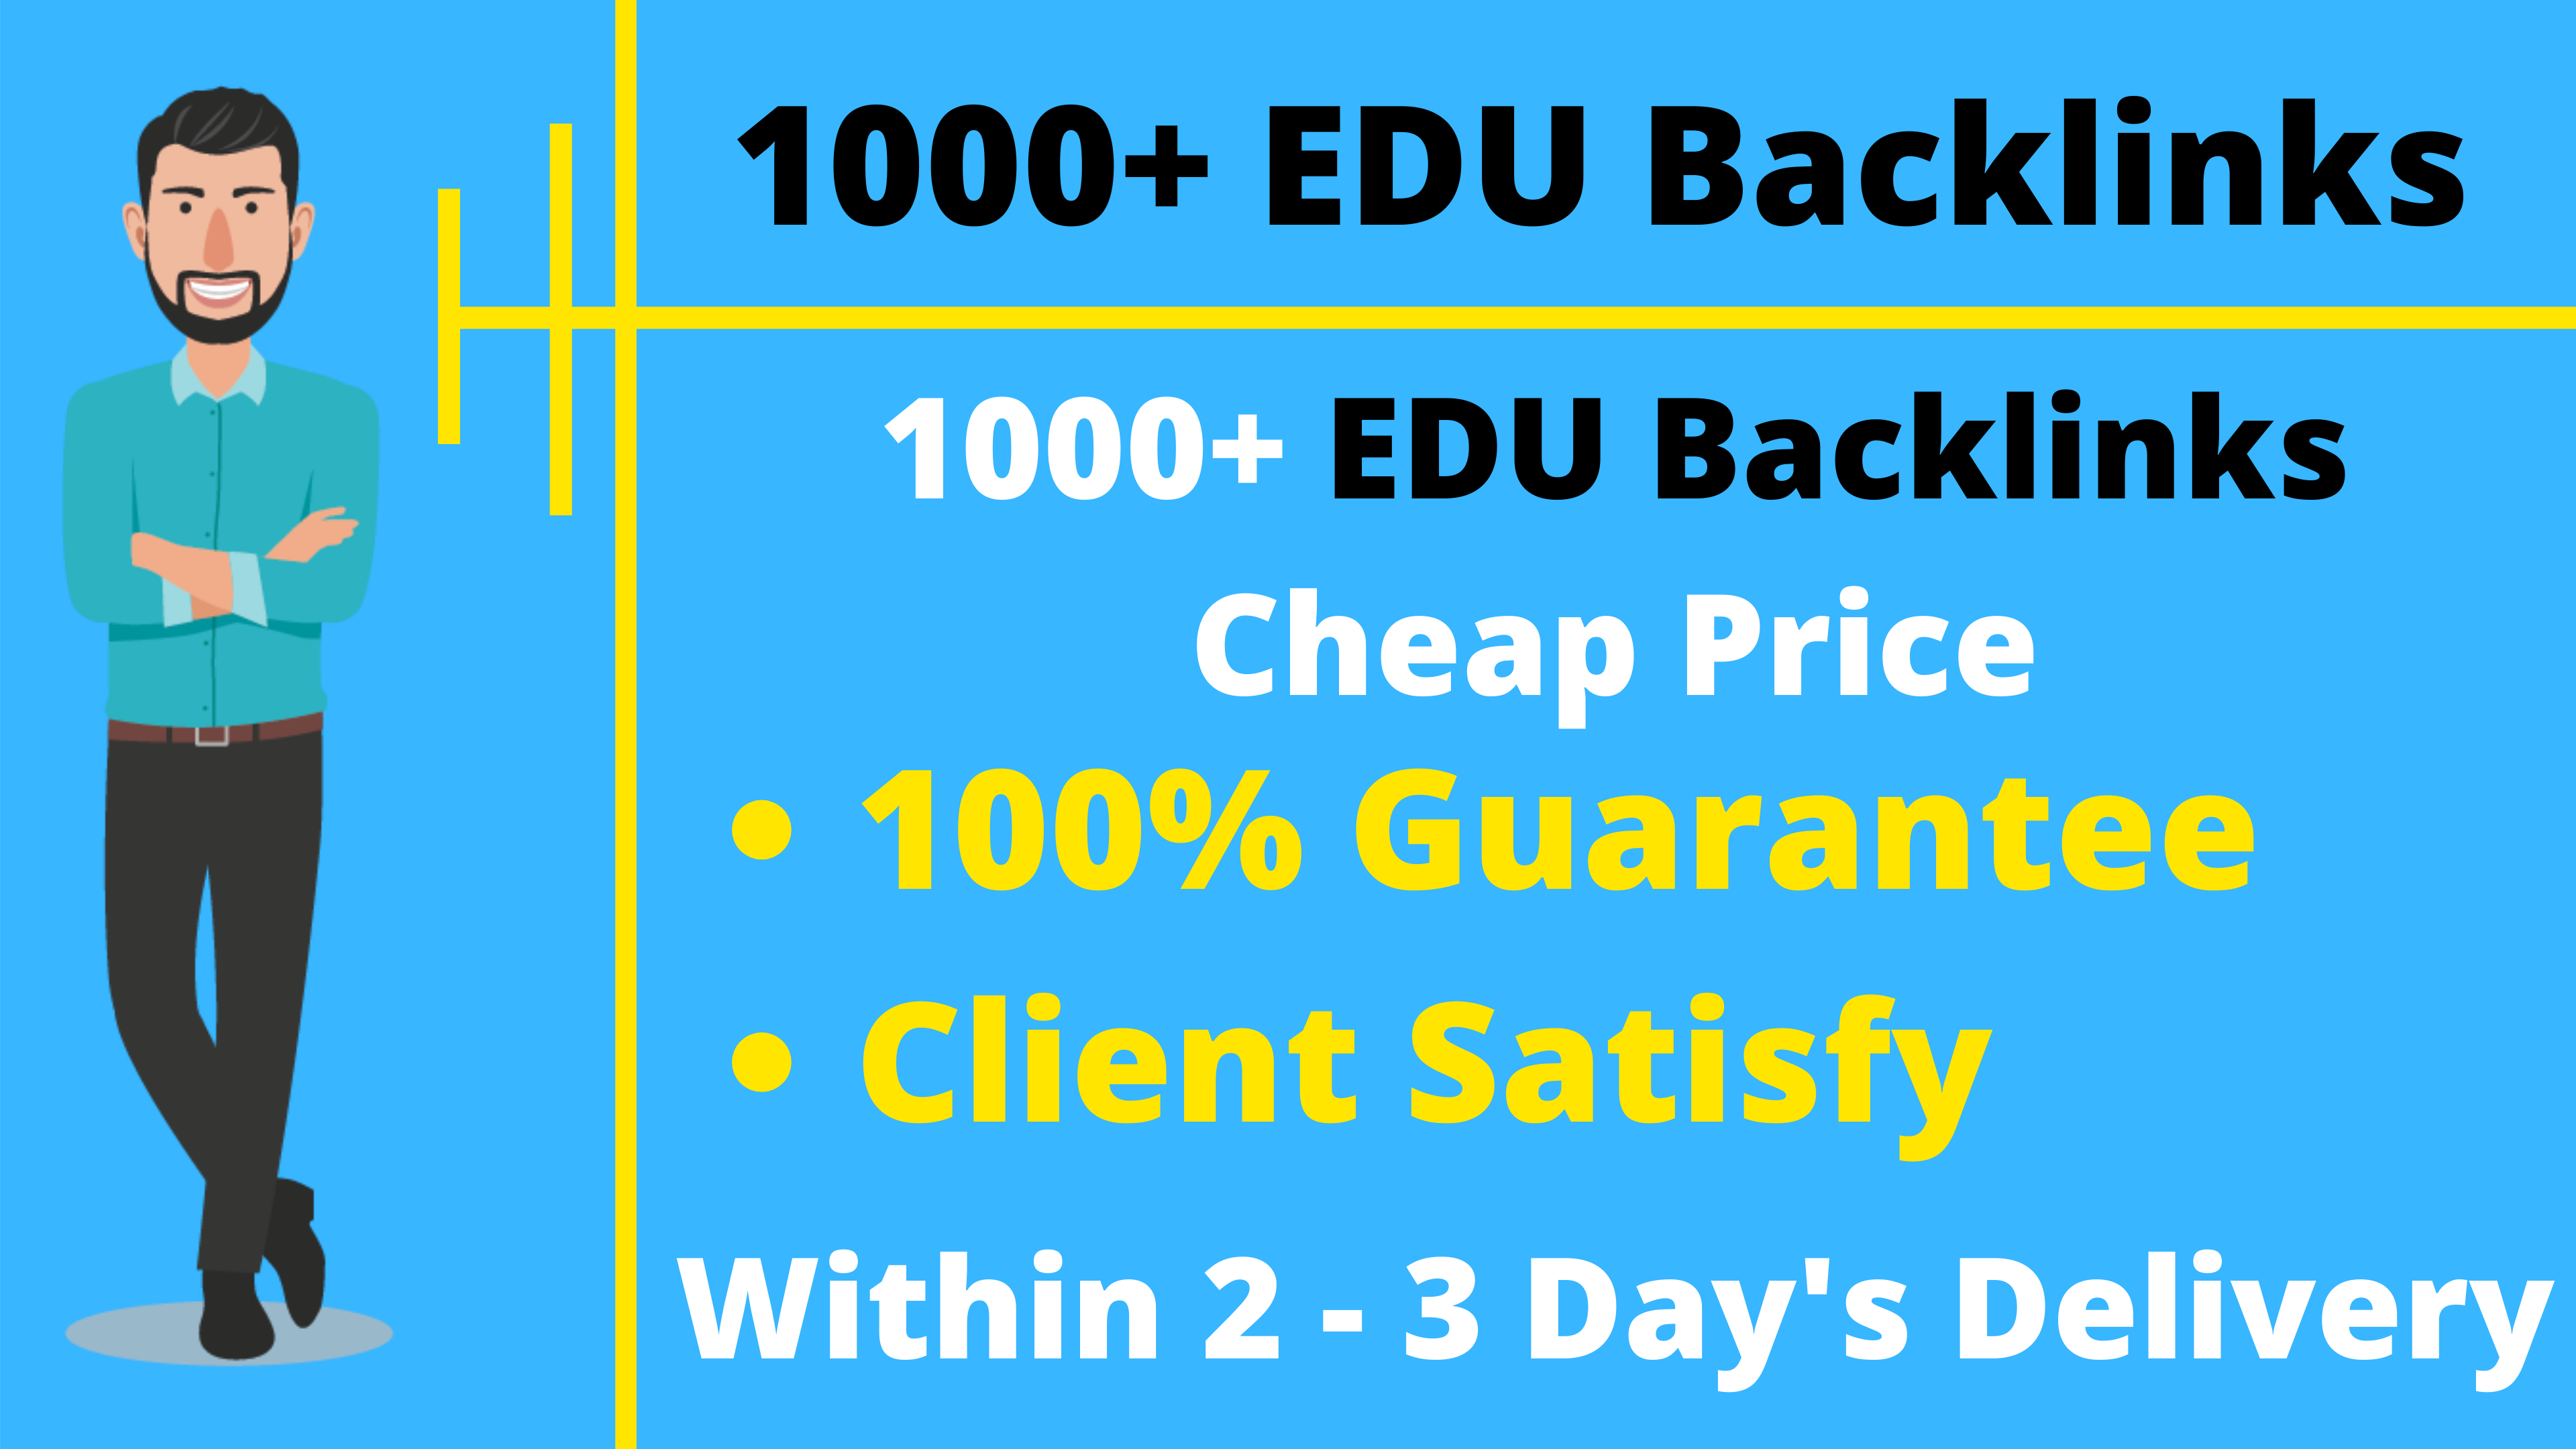 1000+ EDU Backlinks Cheap Price Service Limited Time Offer